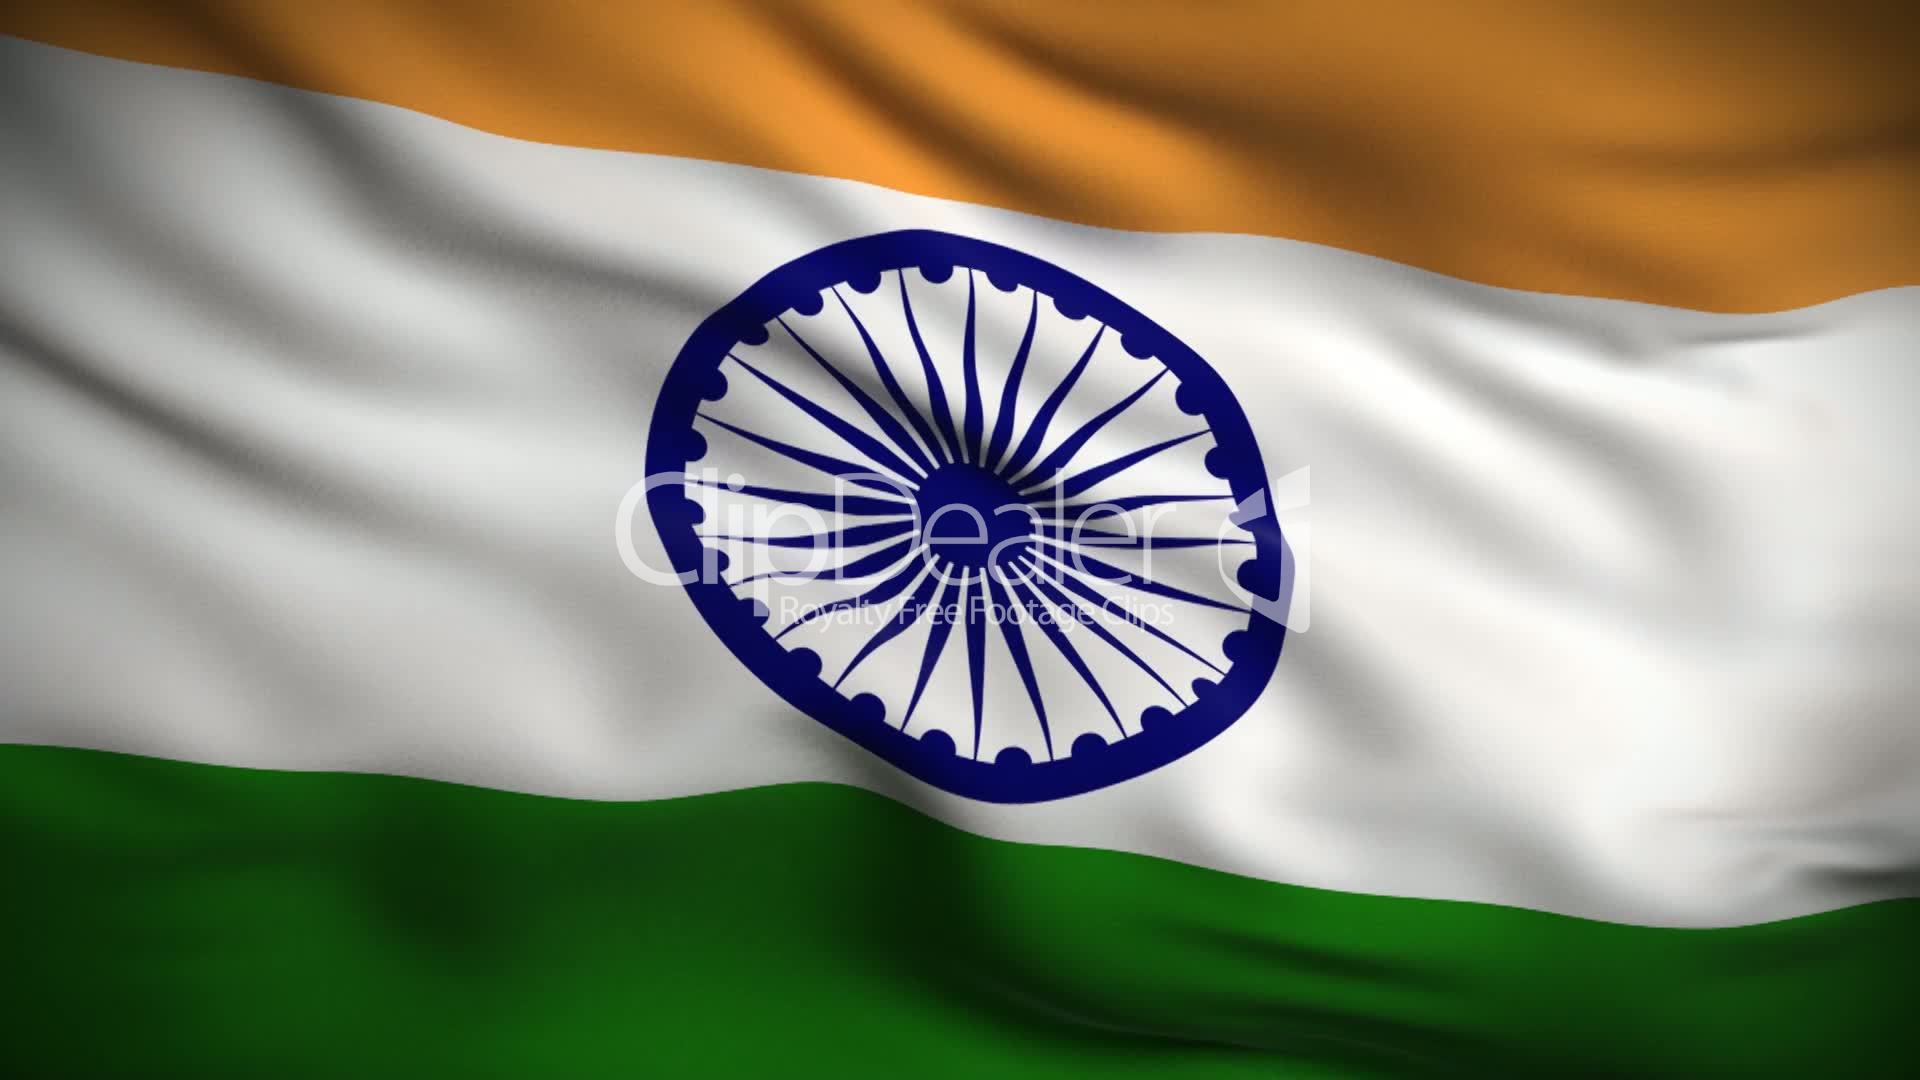 Indian Flag Images Hd720p: Indian Flag HD. Looped.: Vídeos De Archivo Y Clips Libres